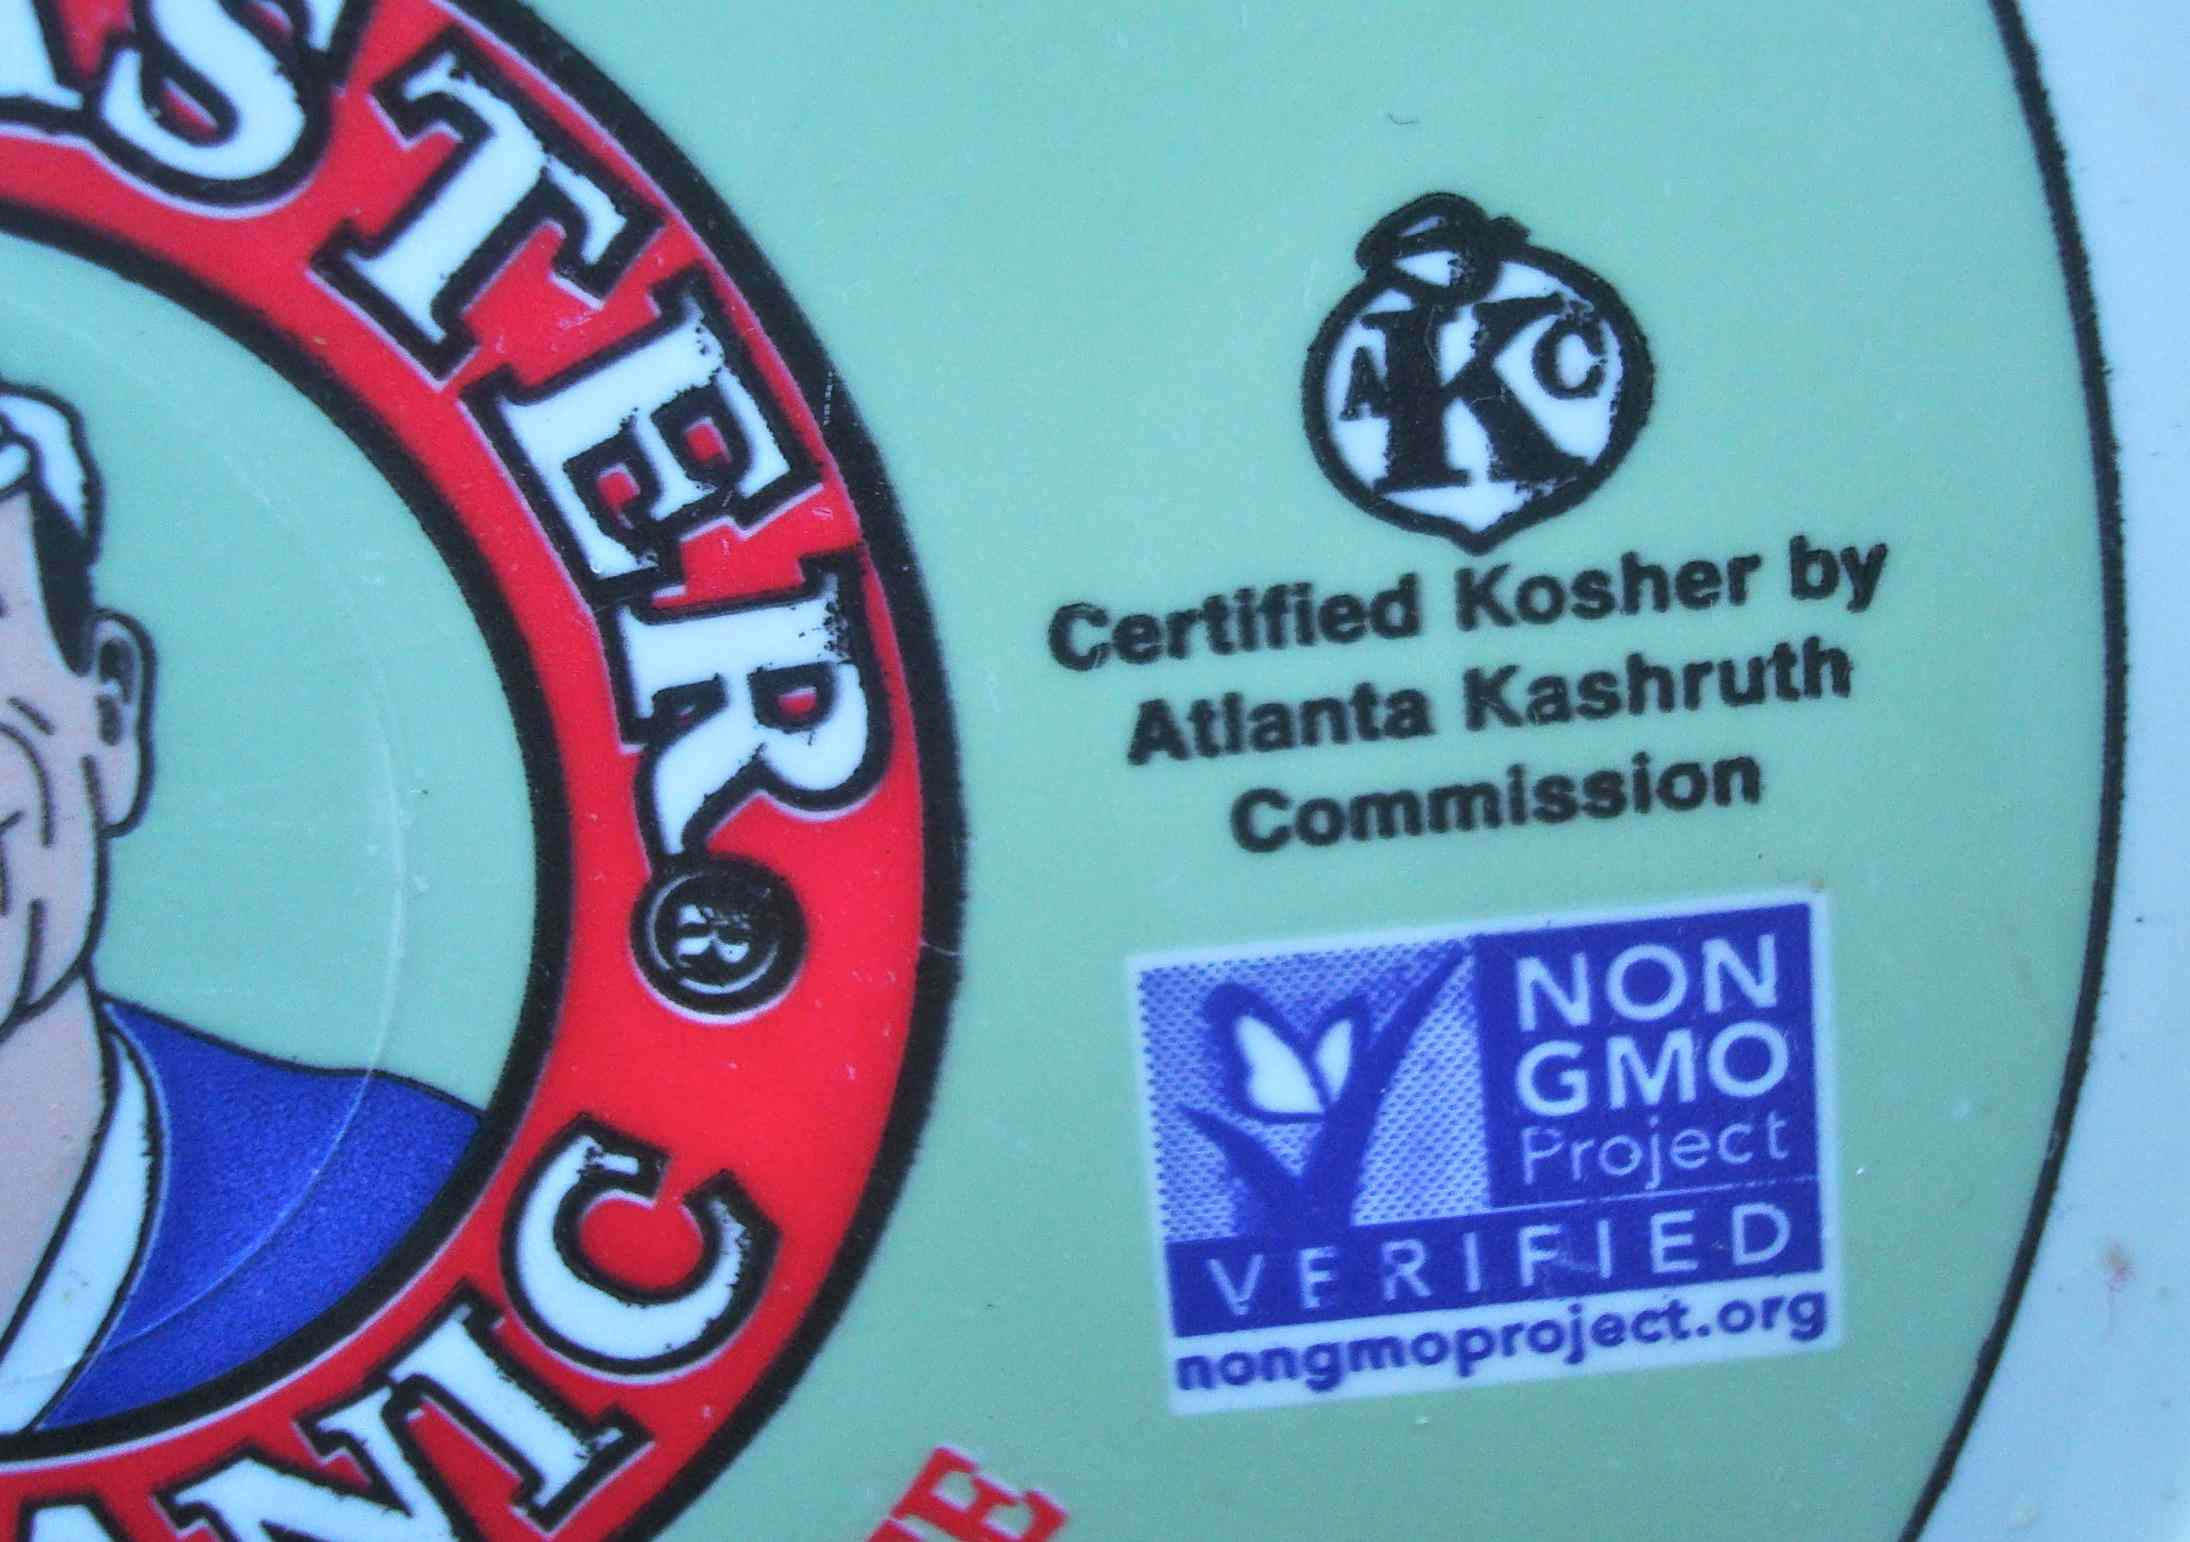 Guide to kosher symbols and certifications biocorpaavc Image collections